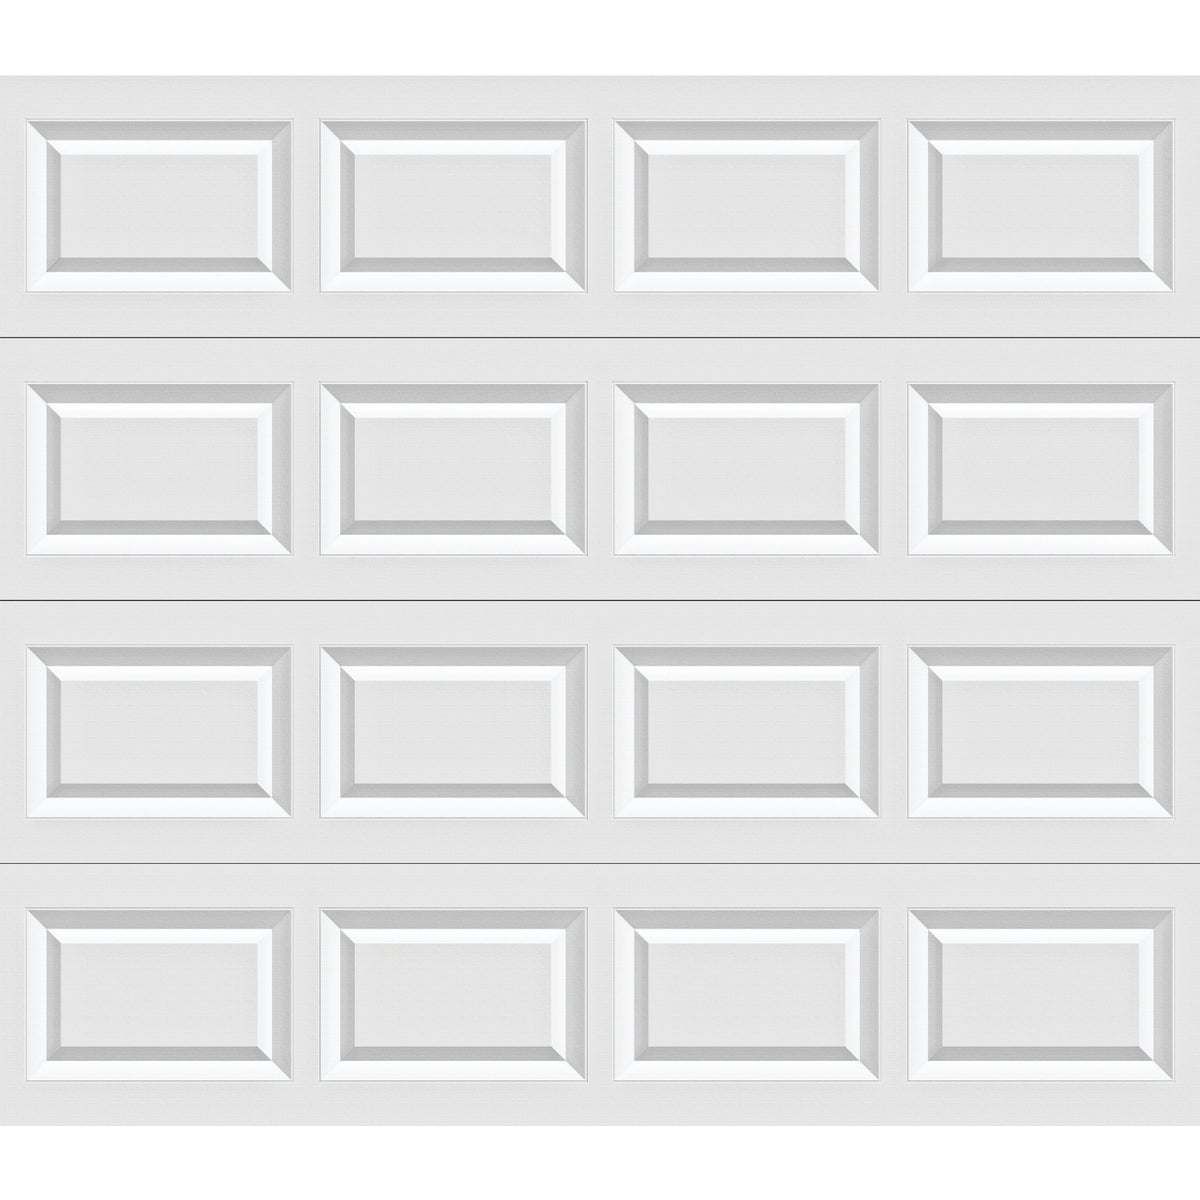 8X7 WHT STL GARAGE DOOR - A632158 by Holmes Garage Doors